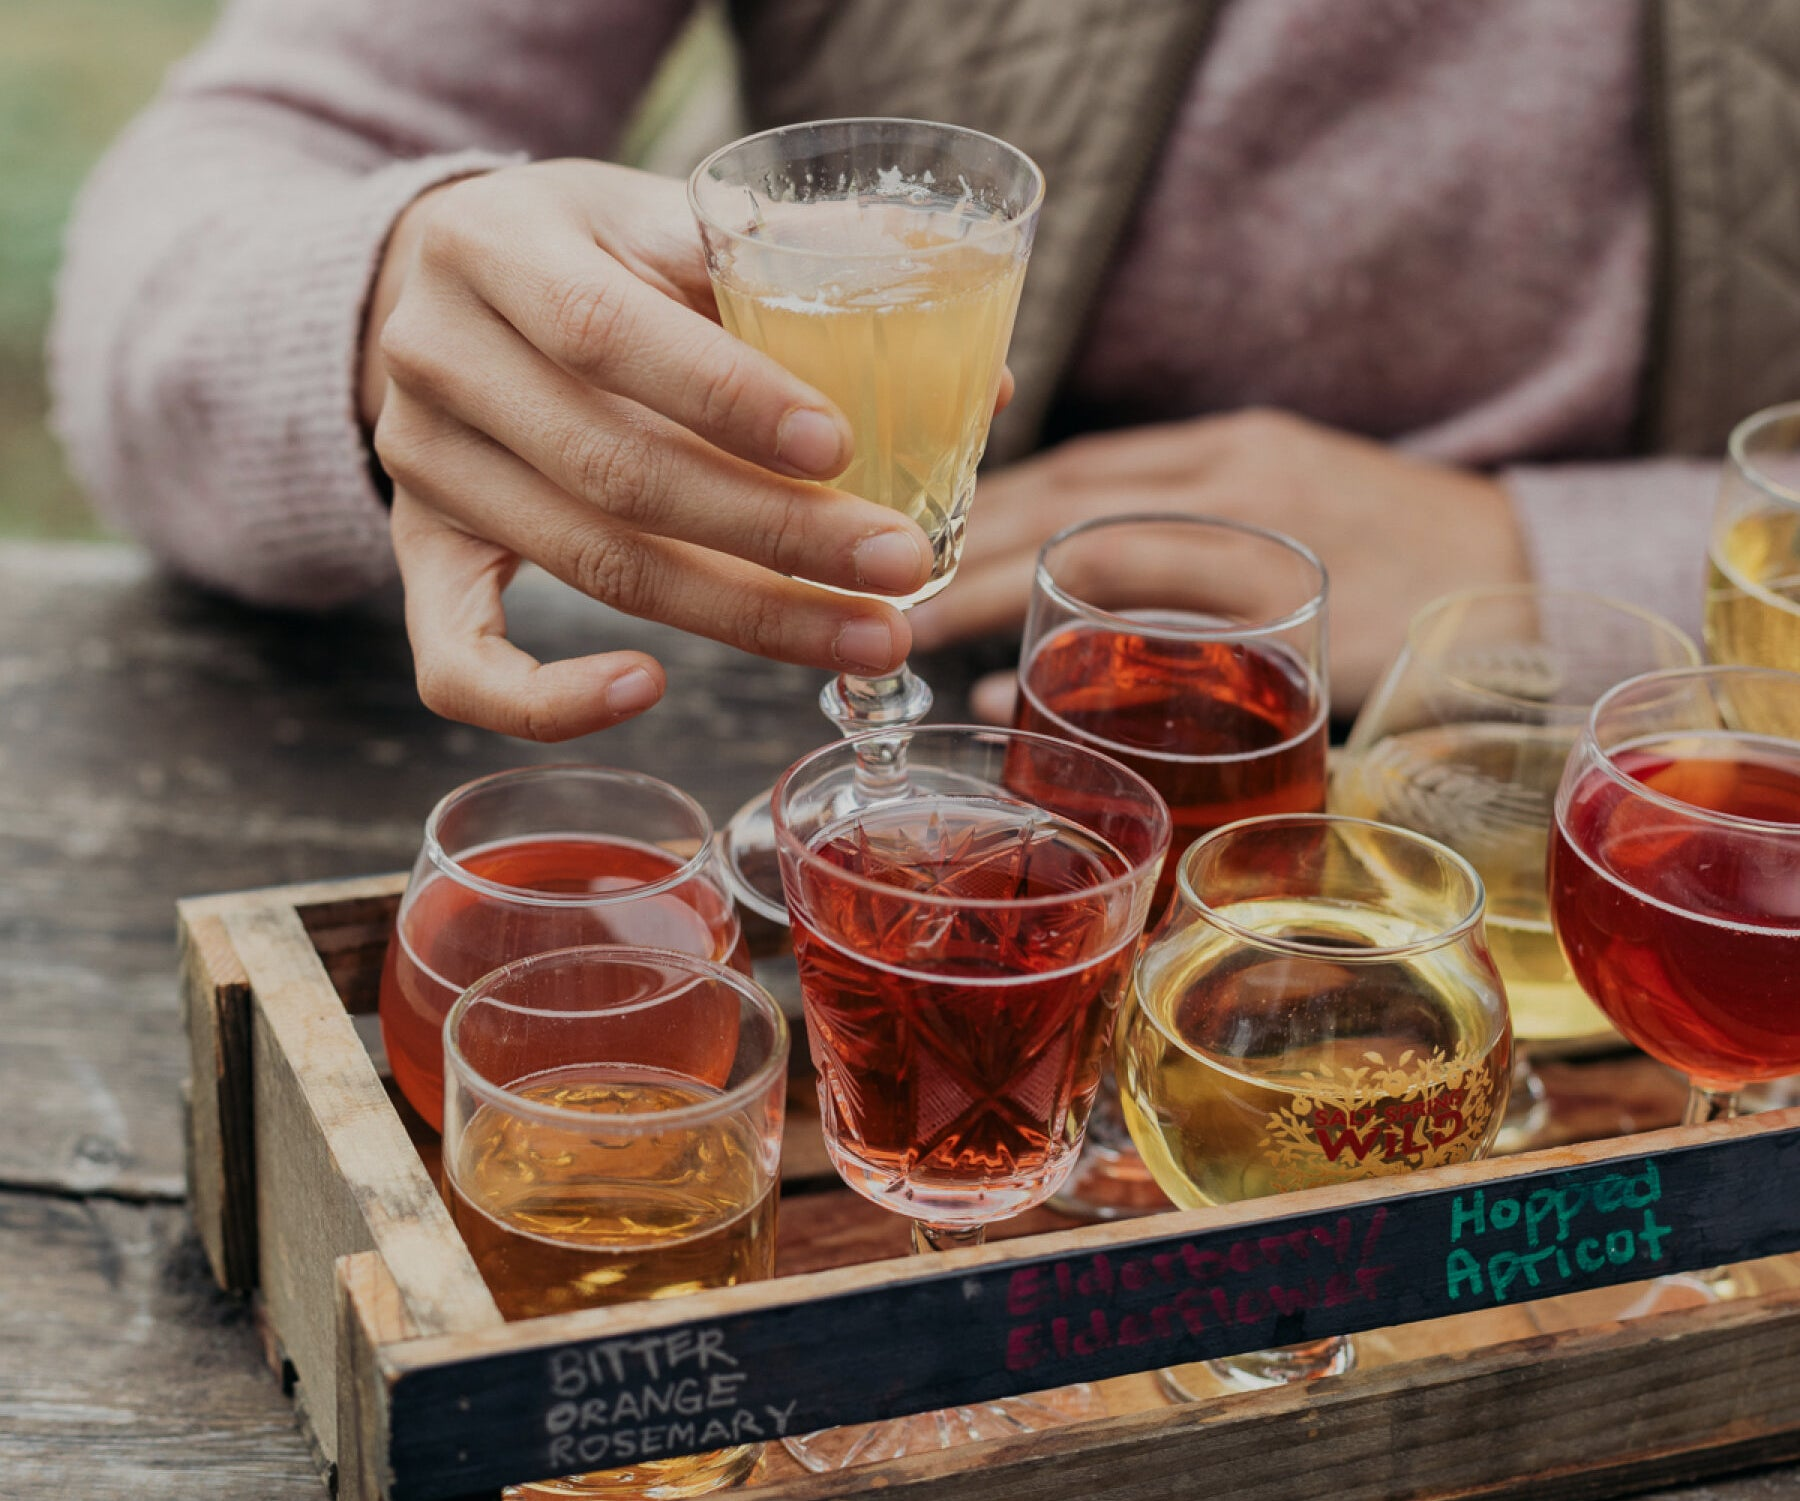 Salt Spring Wild Cider on Salt Spring Island has delicious cider flights, placed in mismatched glassware, pictured is a woman taking one to sip